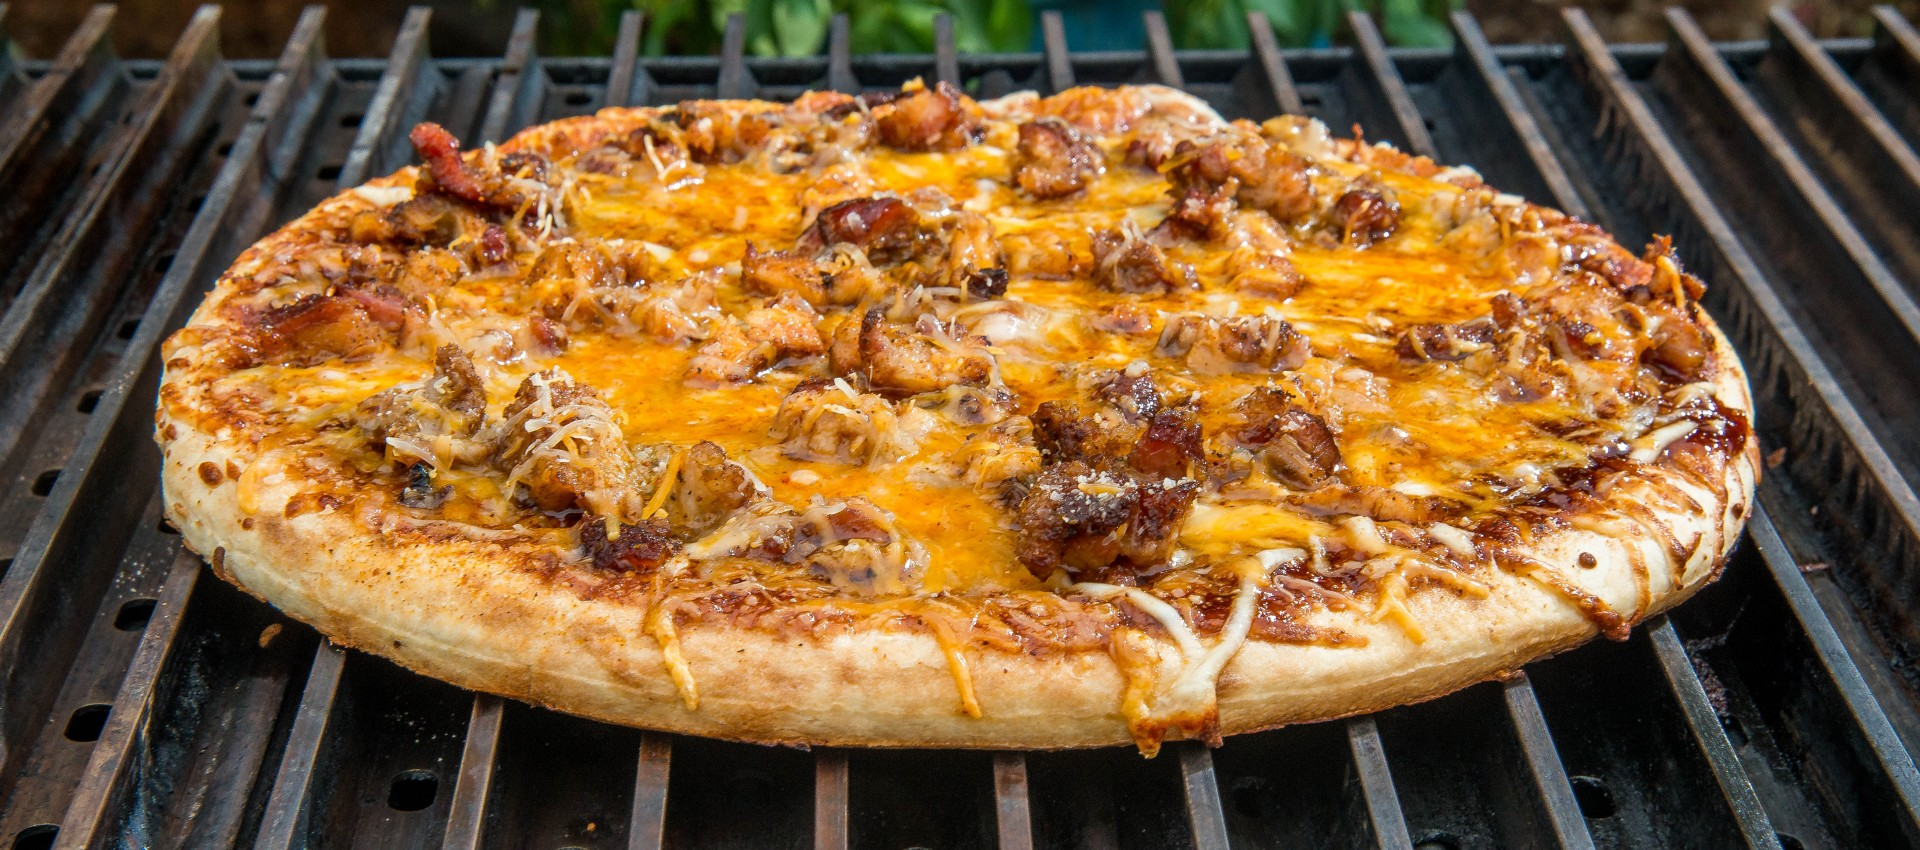 Barbecue Pulled Pork Pizza Grillgrate